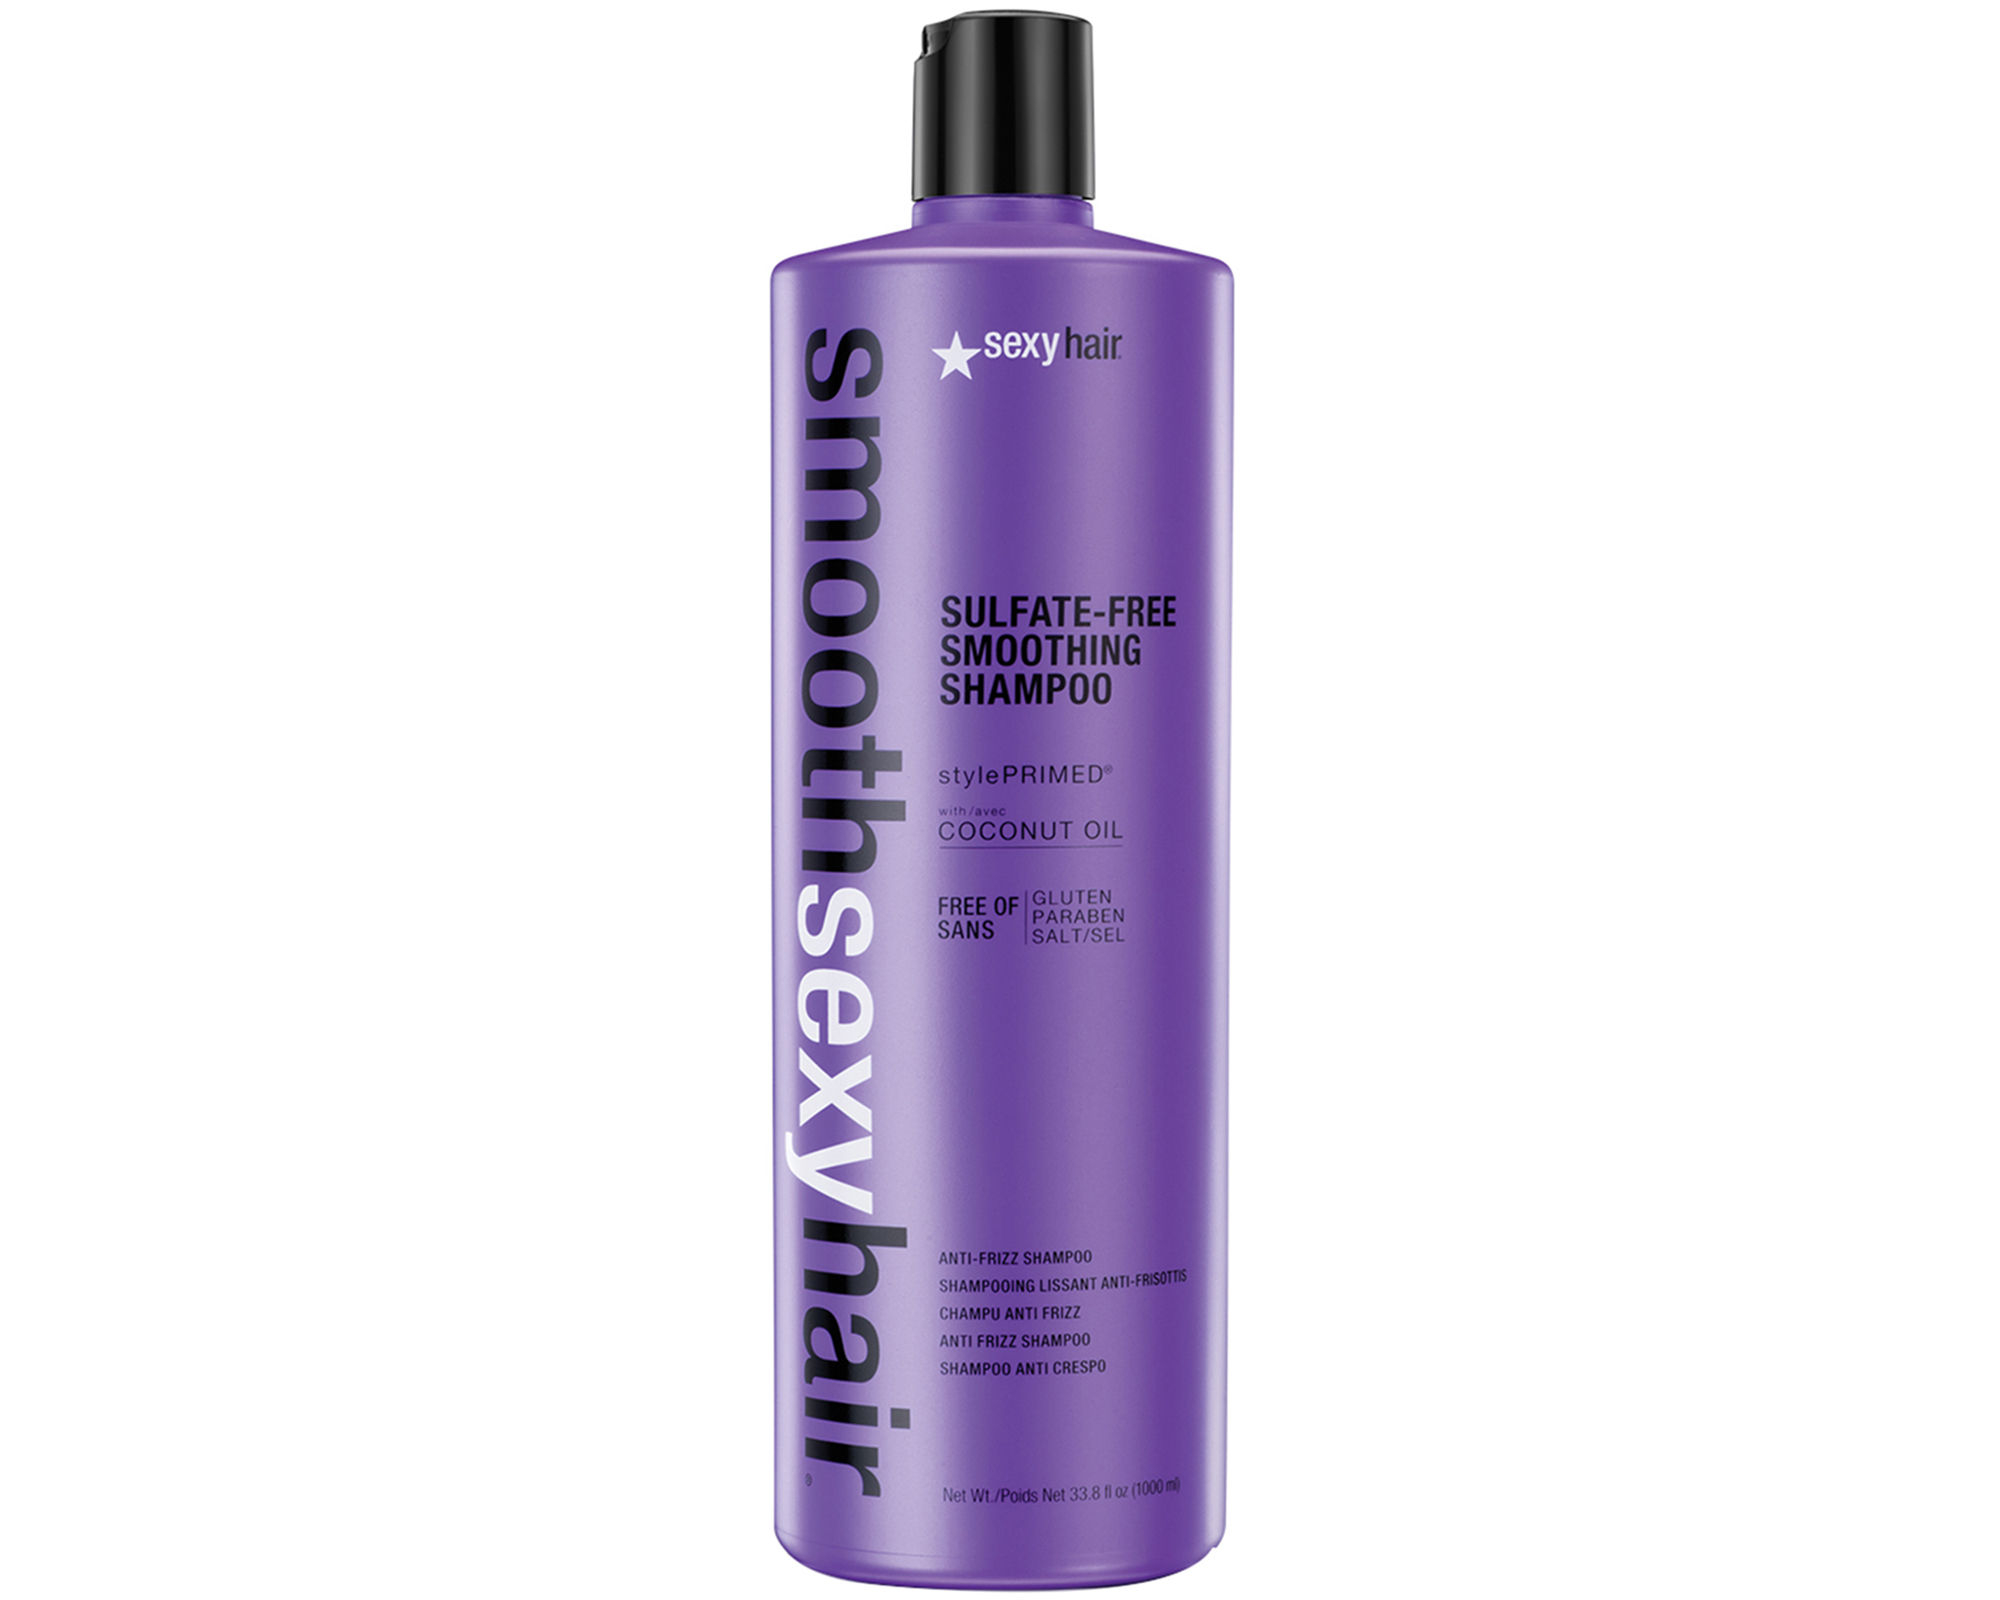 SEXY HAIR SMOOTH Sexy Hair Sulfate-Free Smoothing Shampoo 1000ml